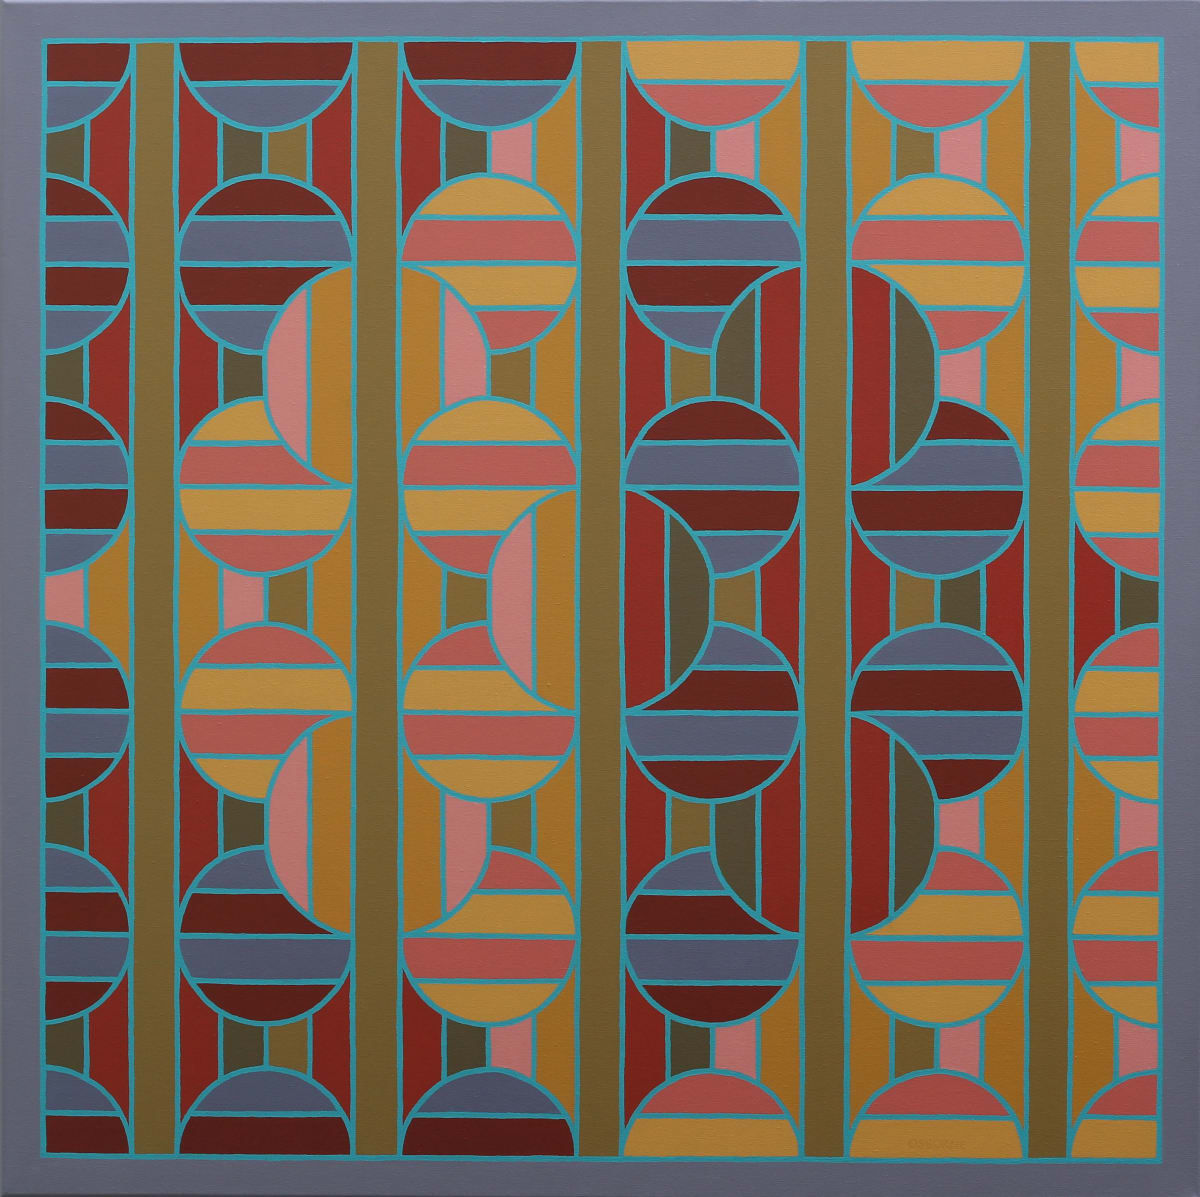 ROY OSBORNE Chromotopia 27 (Per Pale) Divisions series, 2013 oil on canvas 100 x 100 cm 39 1/2 x 39 1/2 in signed and dated